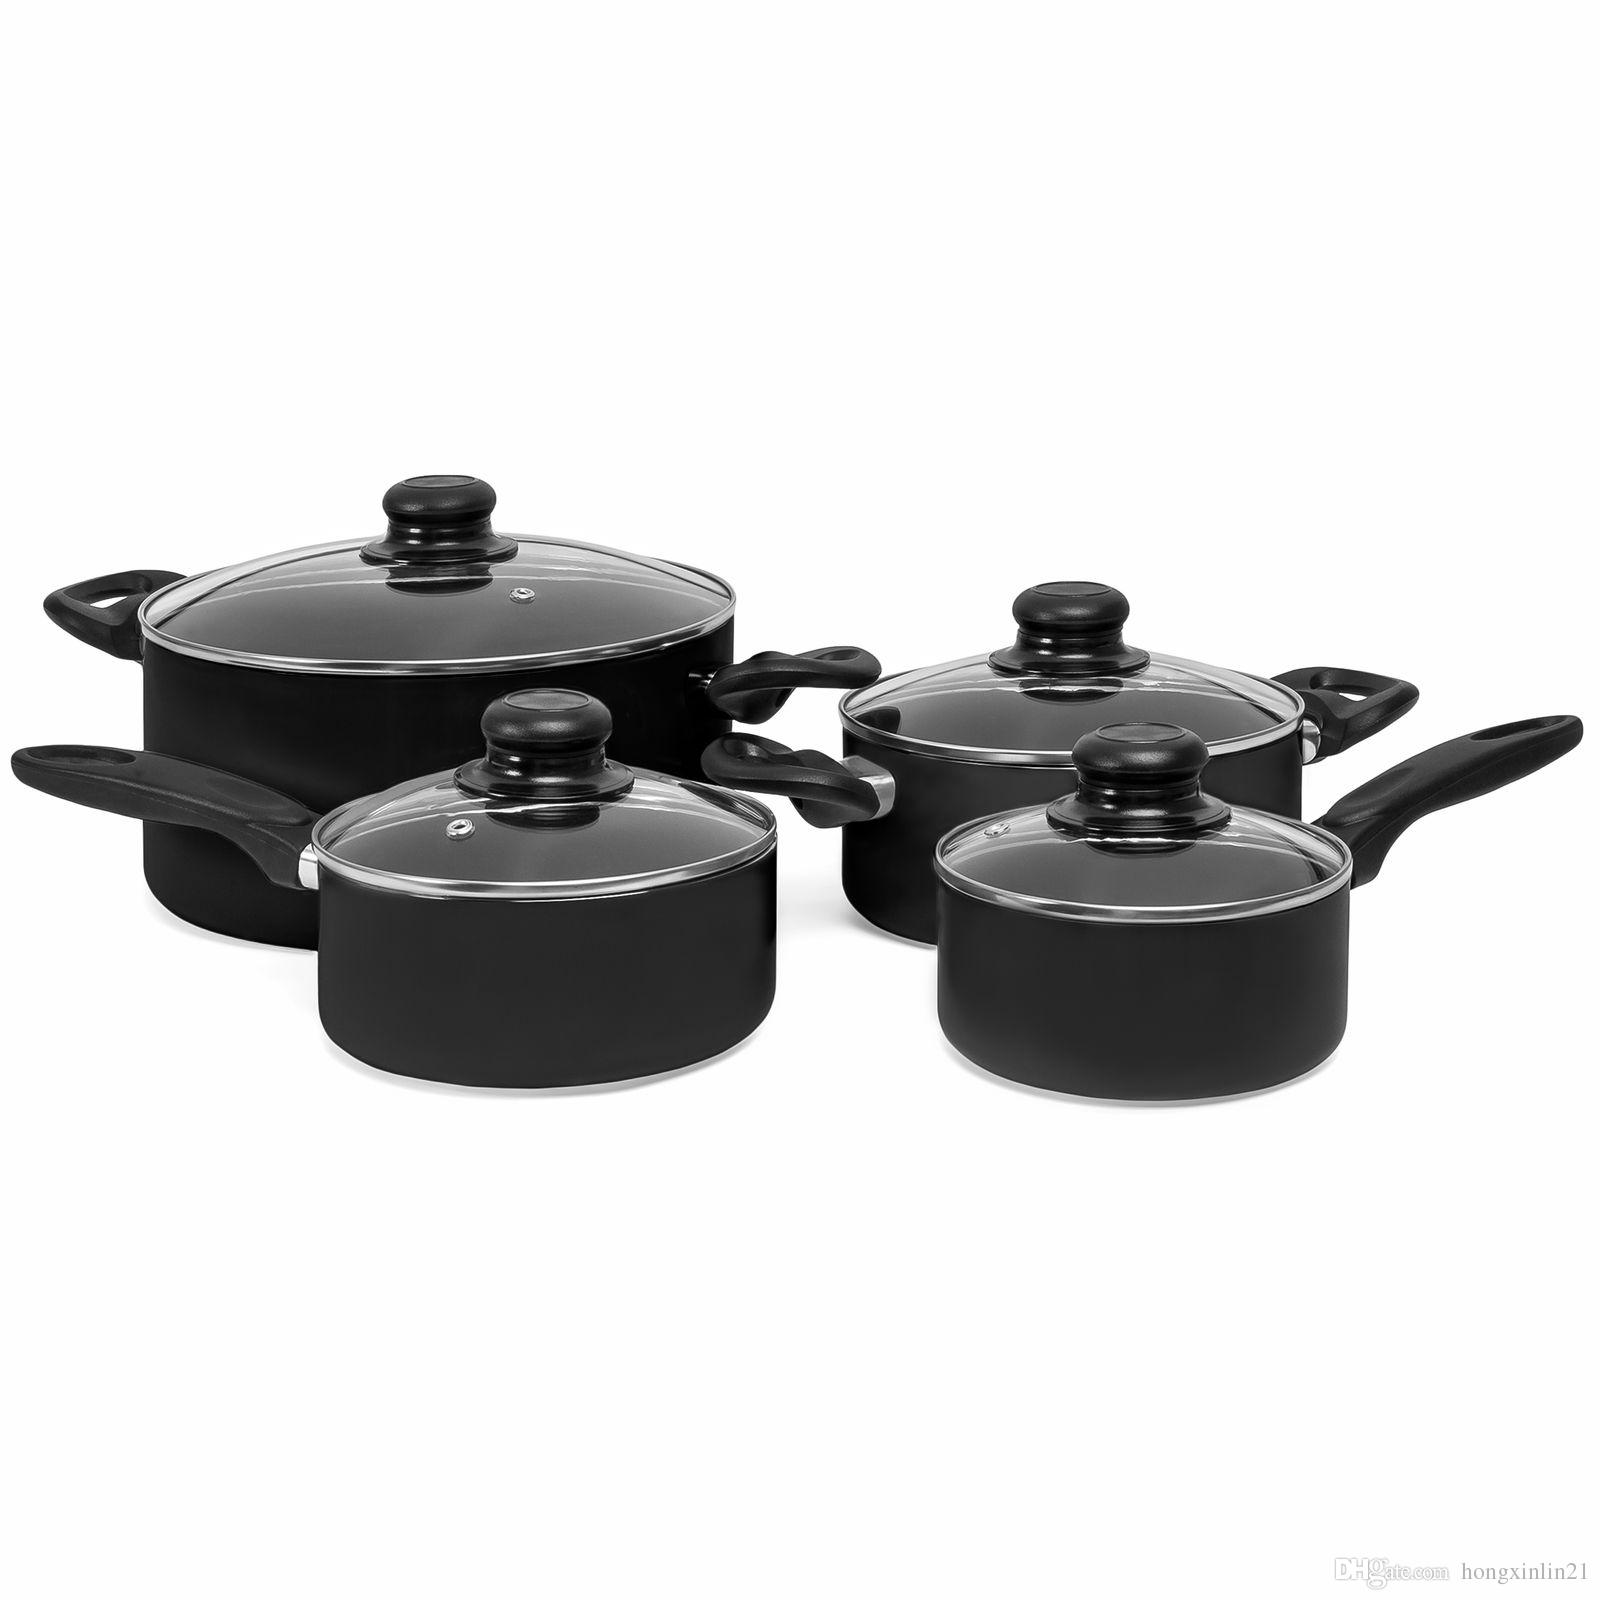 Nonstick Cookware Set Kitchen Pots Pans Nonstick With Cooking